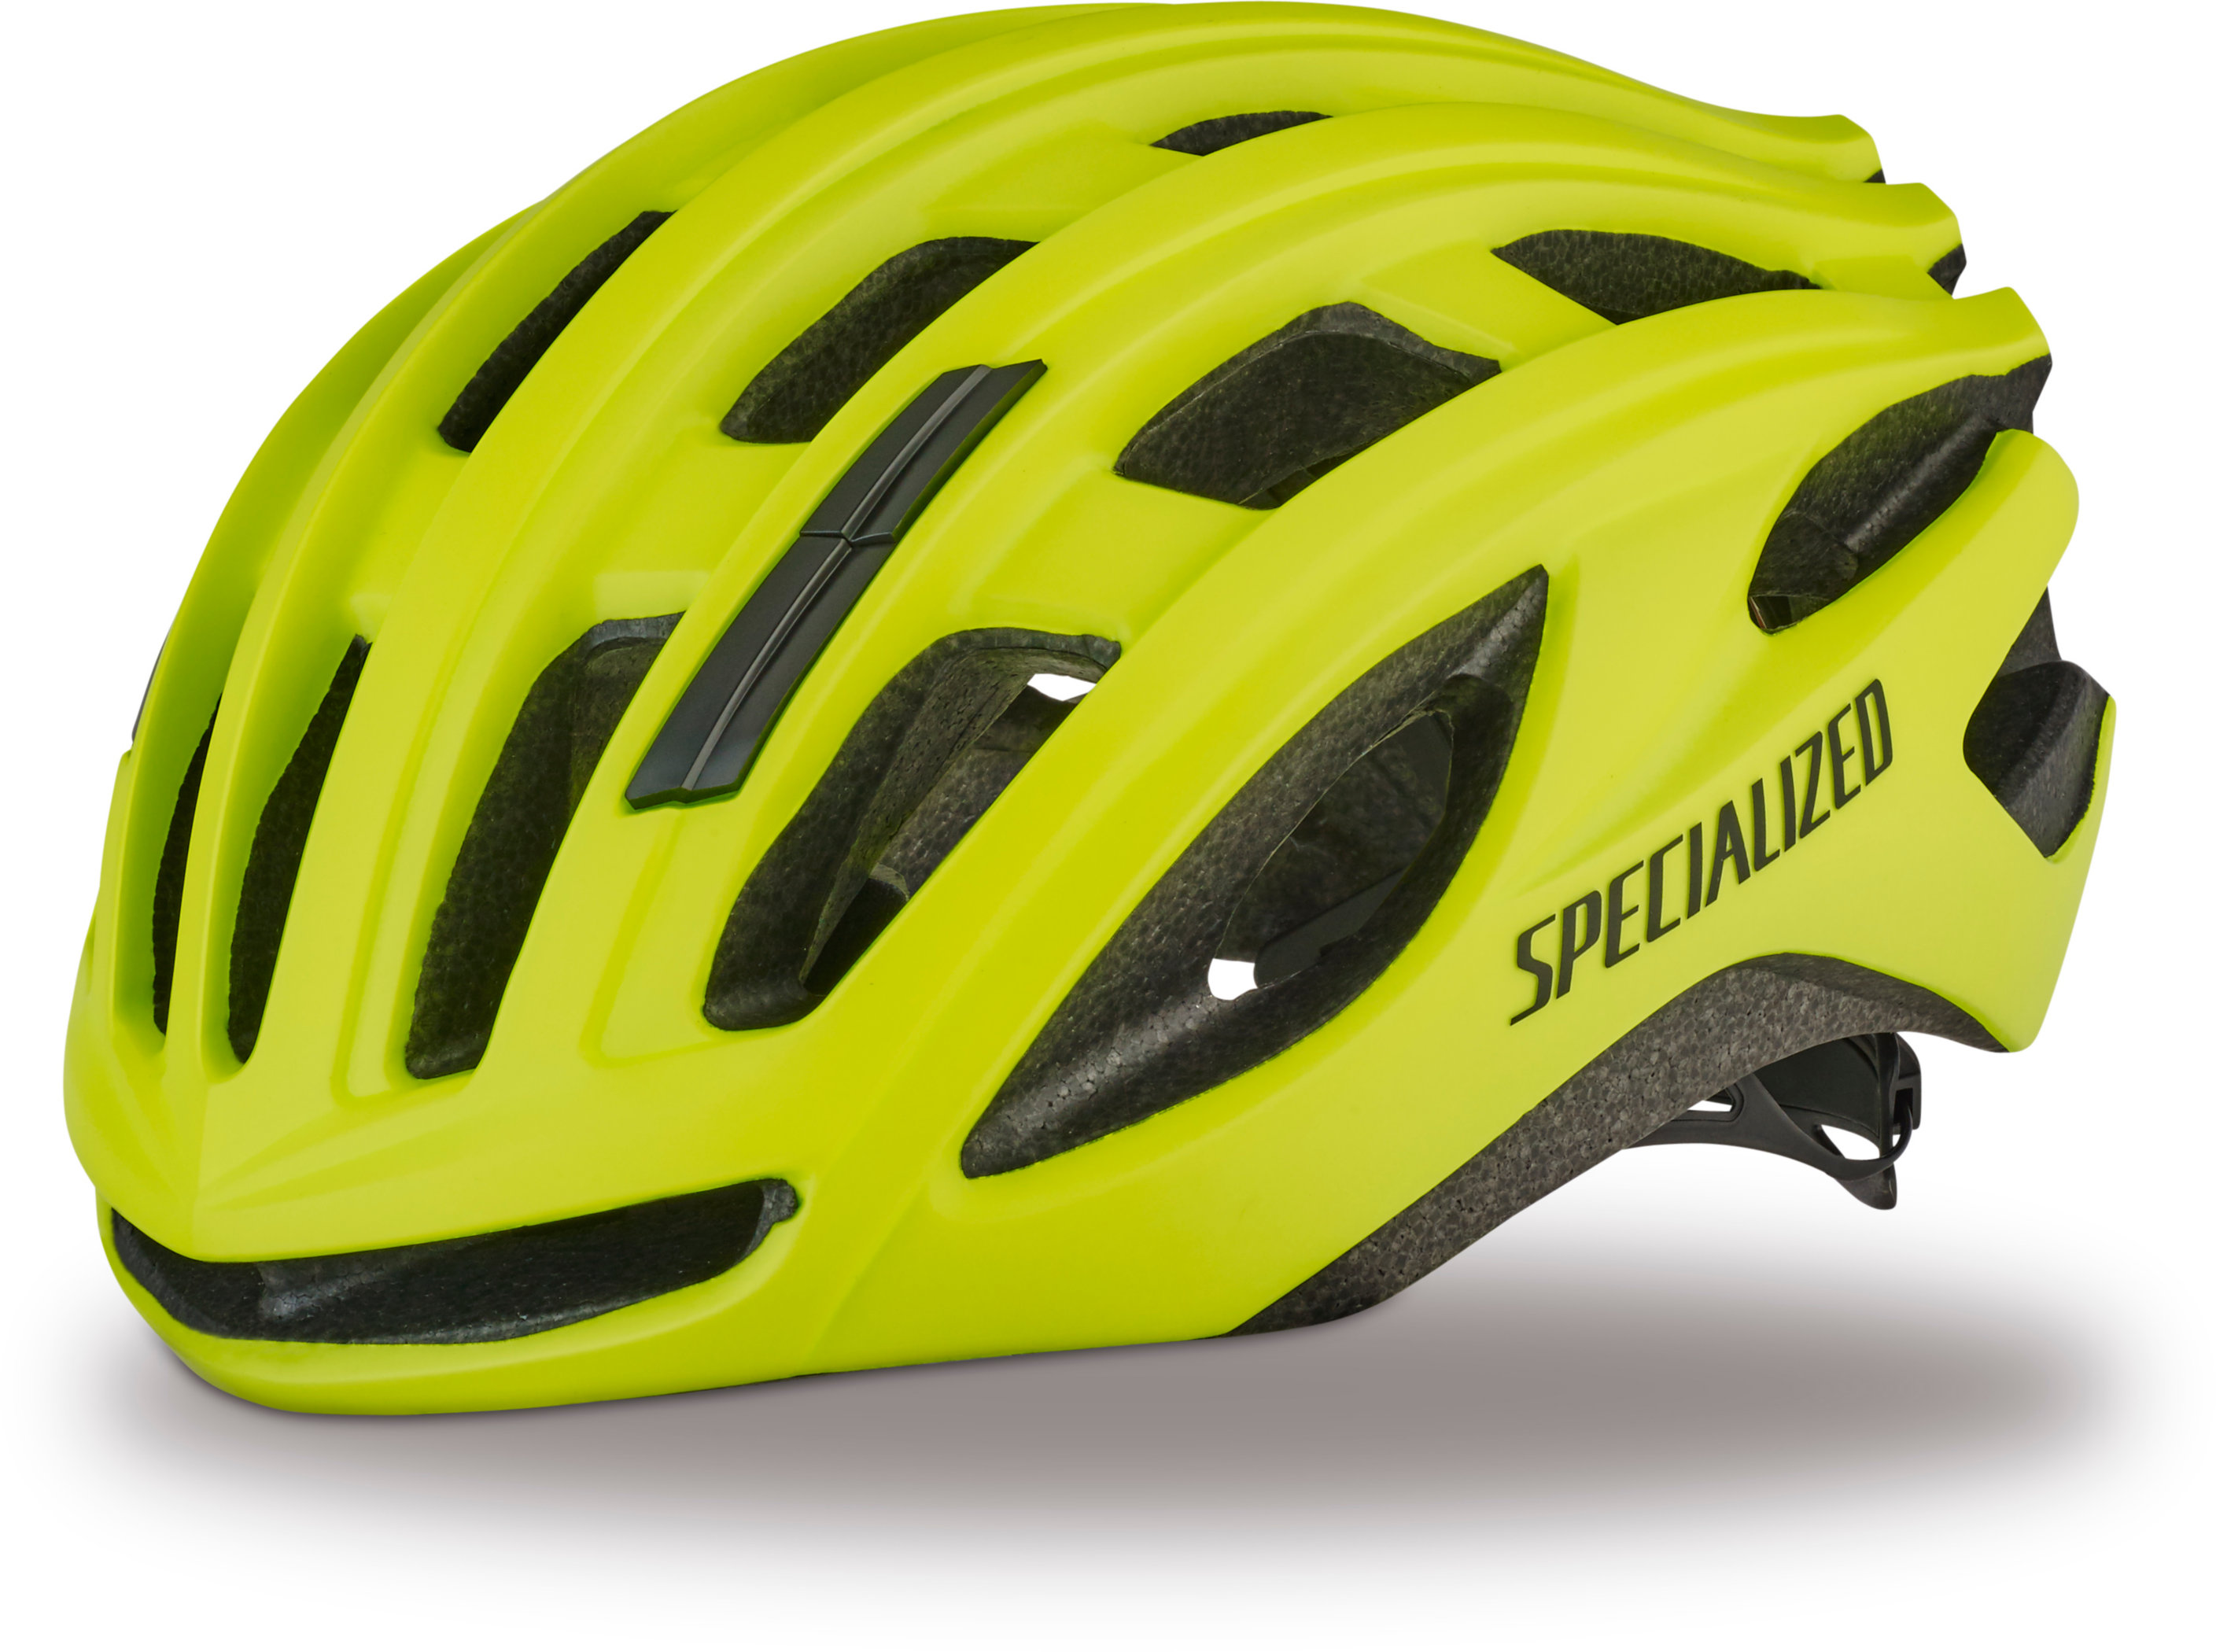 SPECIALIZED PROPERO 3 HLMT CE SAFETY ION L - Alpha Bikes